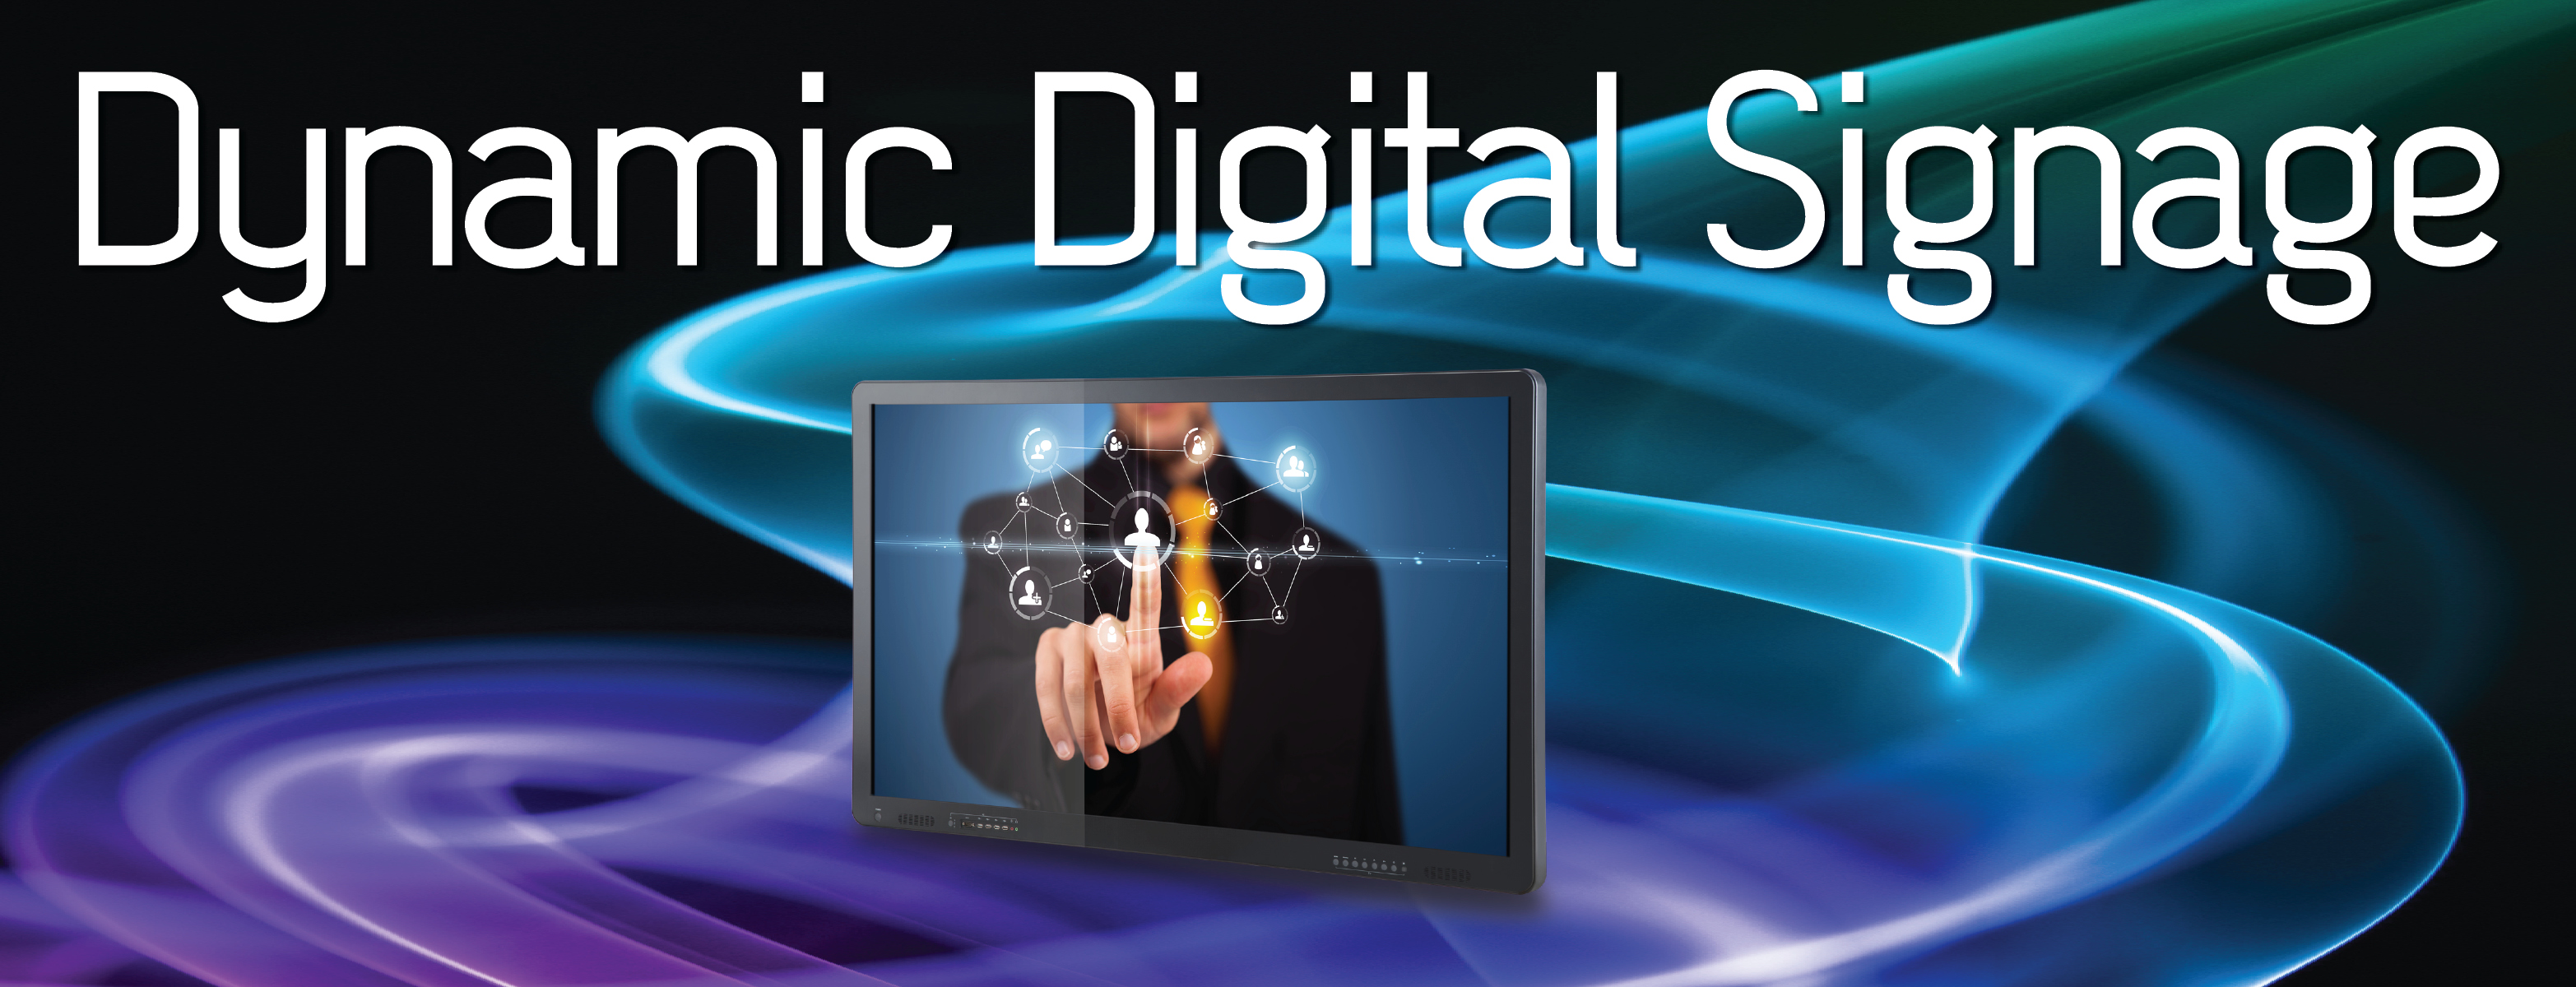 We've added all the information you need to know about our Dynamic Digital Displays! Head over to http://ppprint.ca/product/dynamic-dig... to find out all the details about the displays. If you have any questions feel free to give us a call at 905.985.9755 or email us at production@ppprint.ca. If you want to see our units that are on display stop by at 201 North Street, Port Perry.